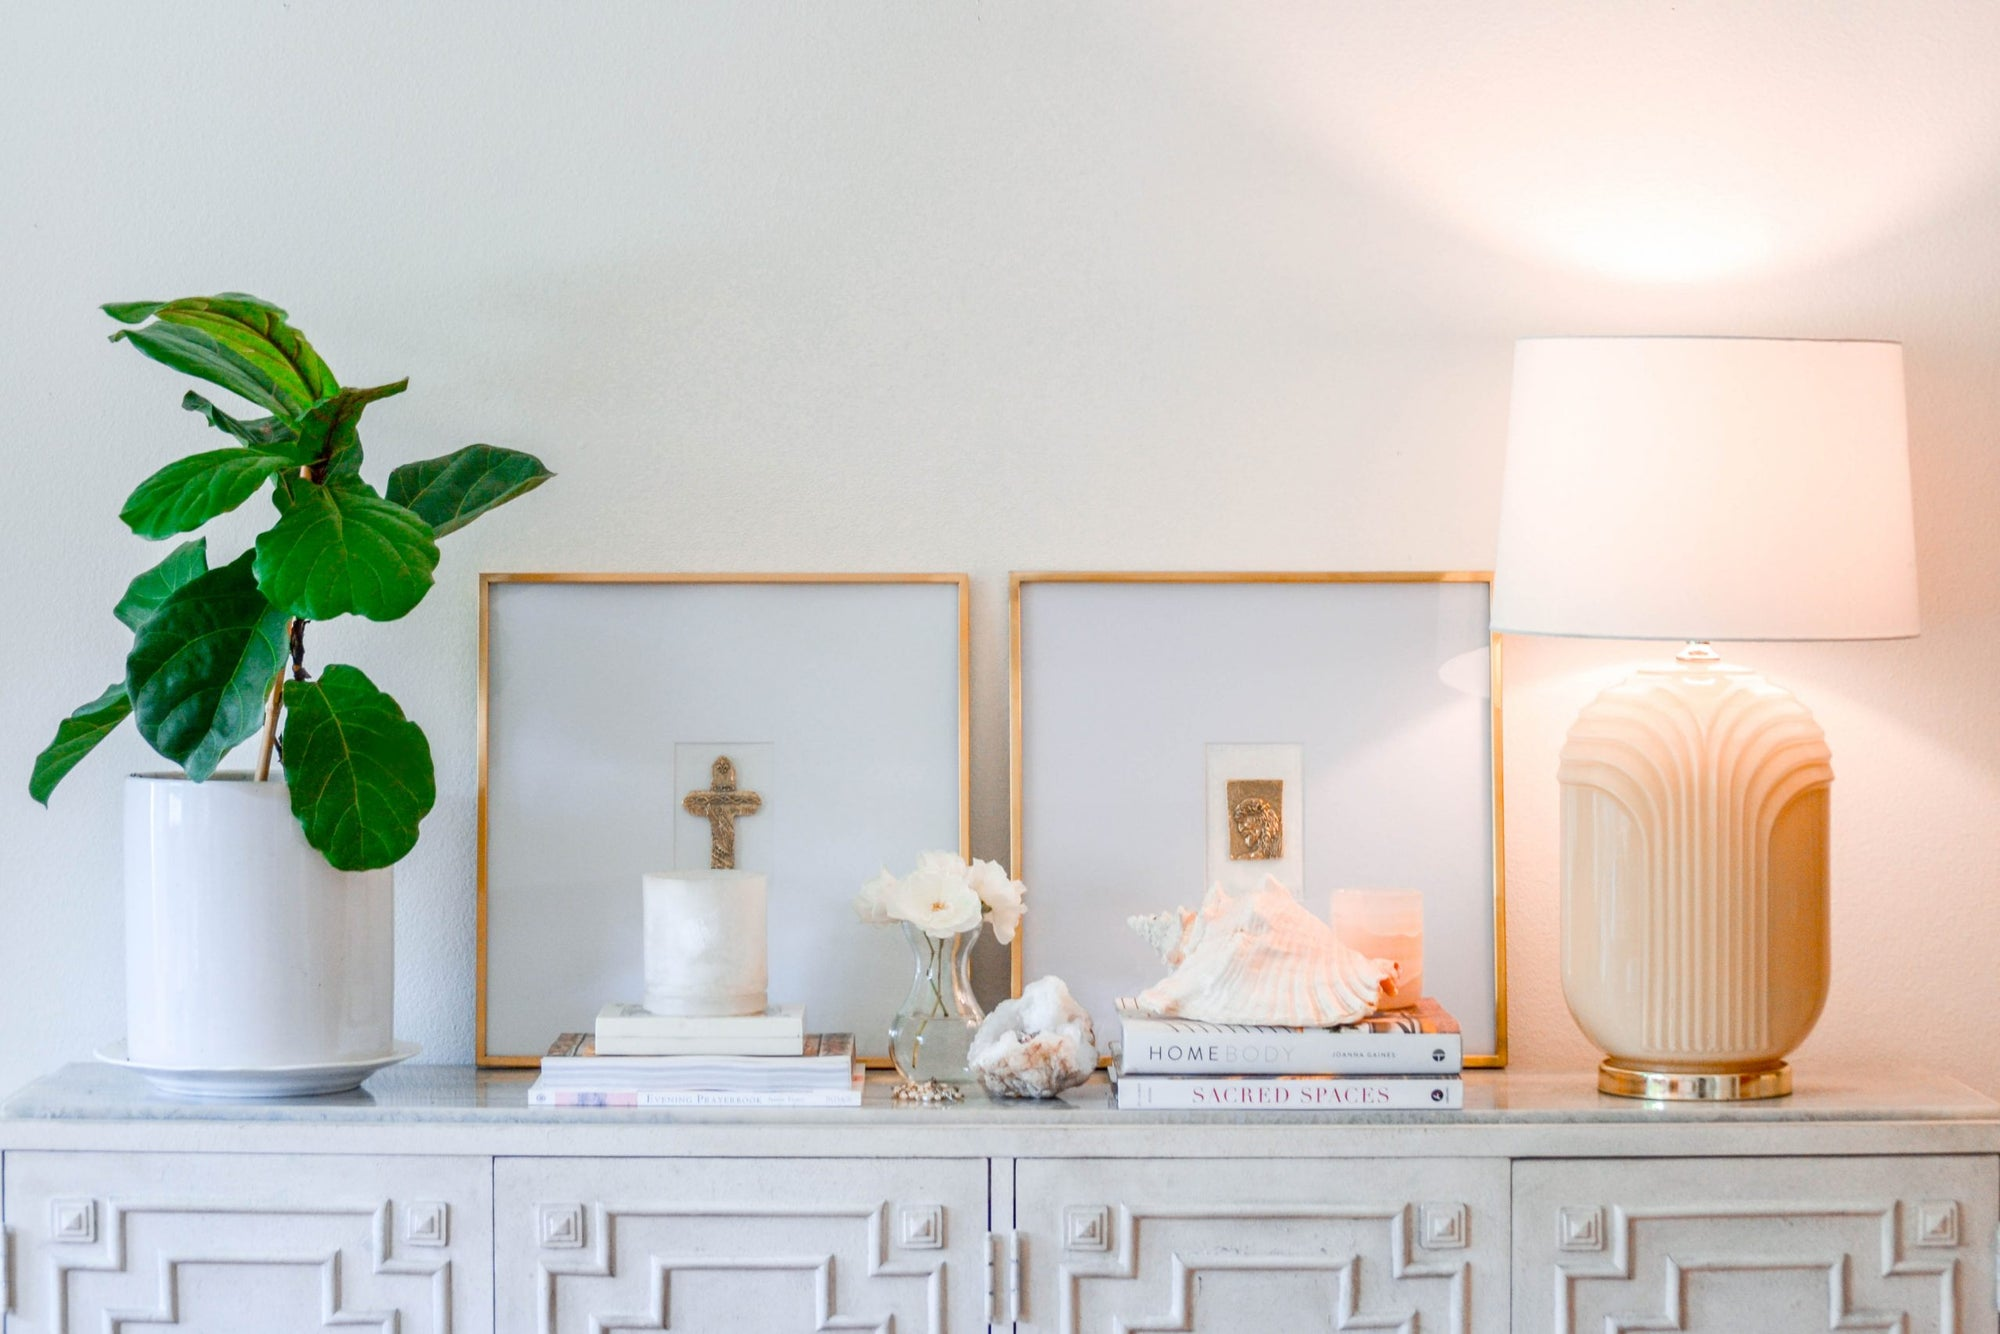 Everything You Need to Create A Home Prayer Space